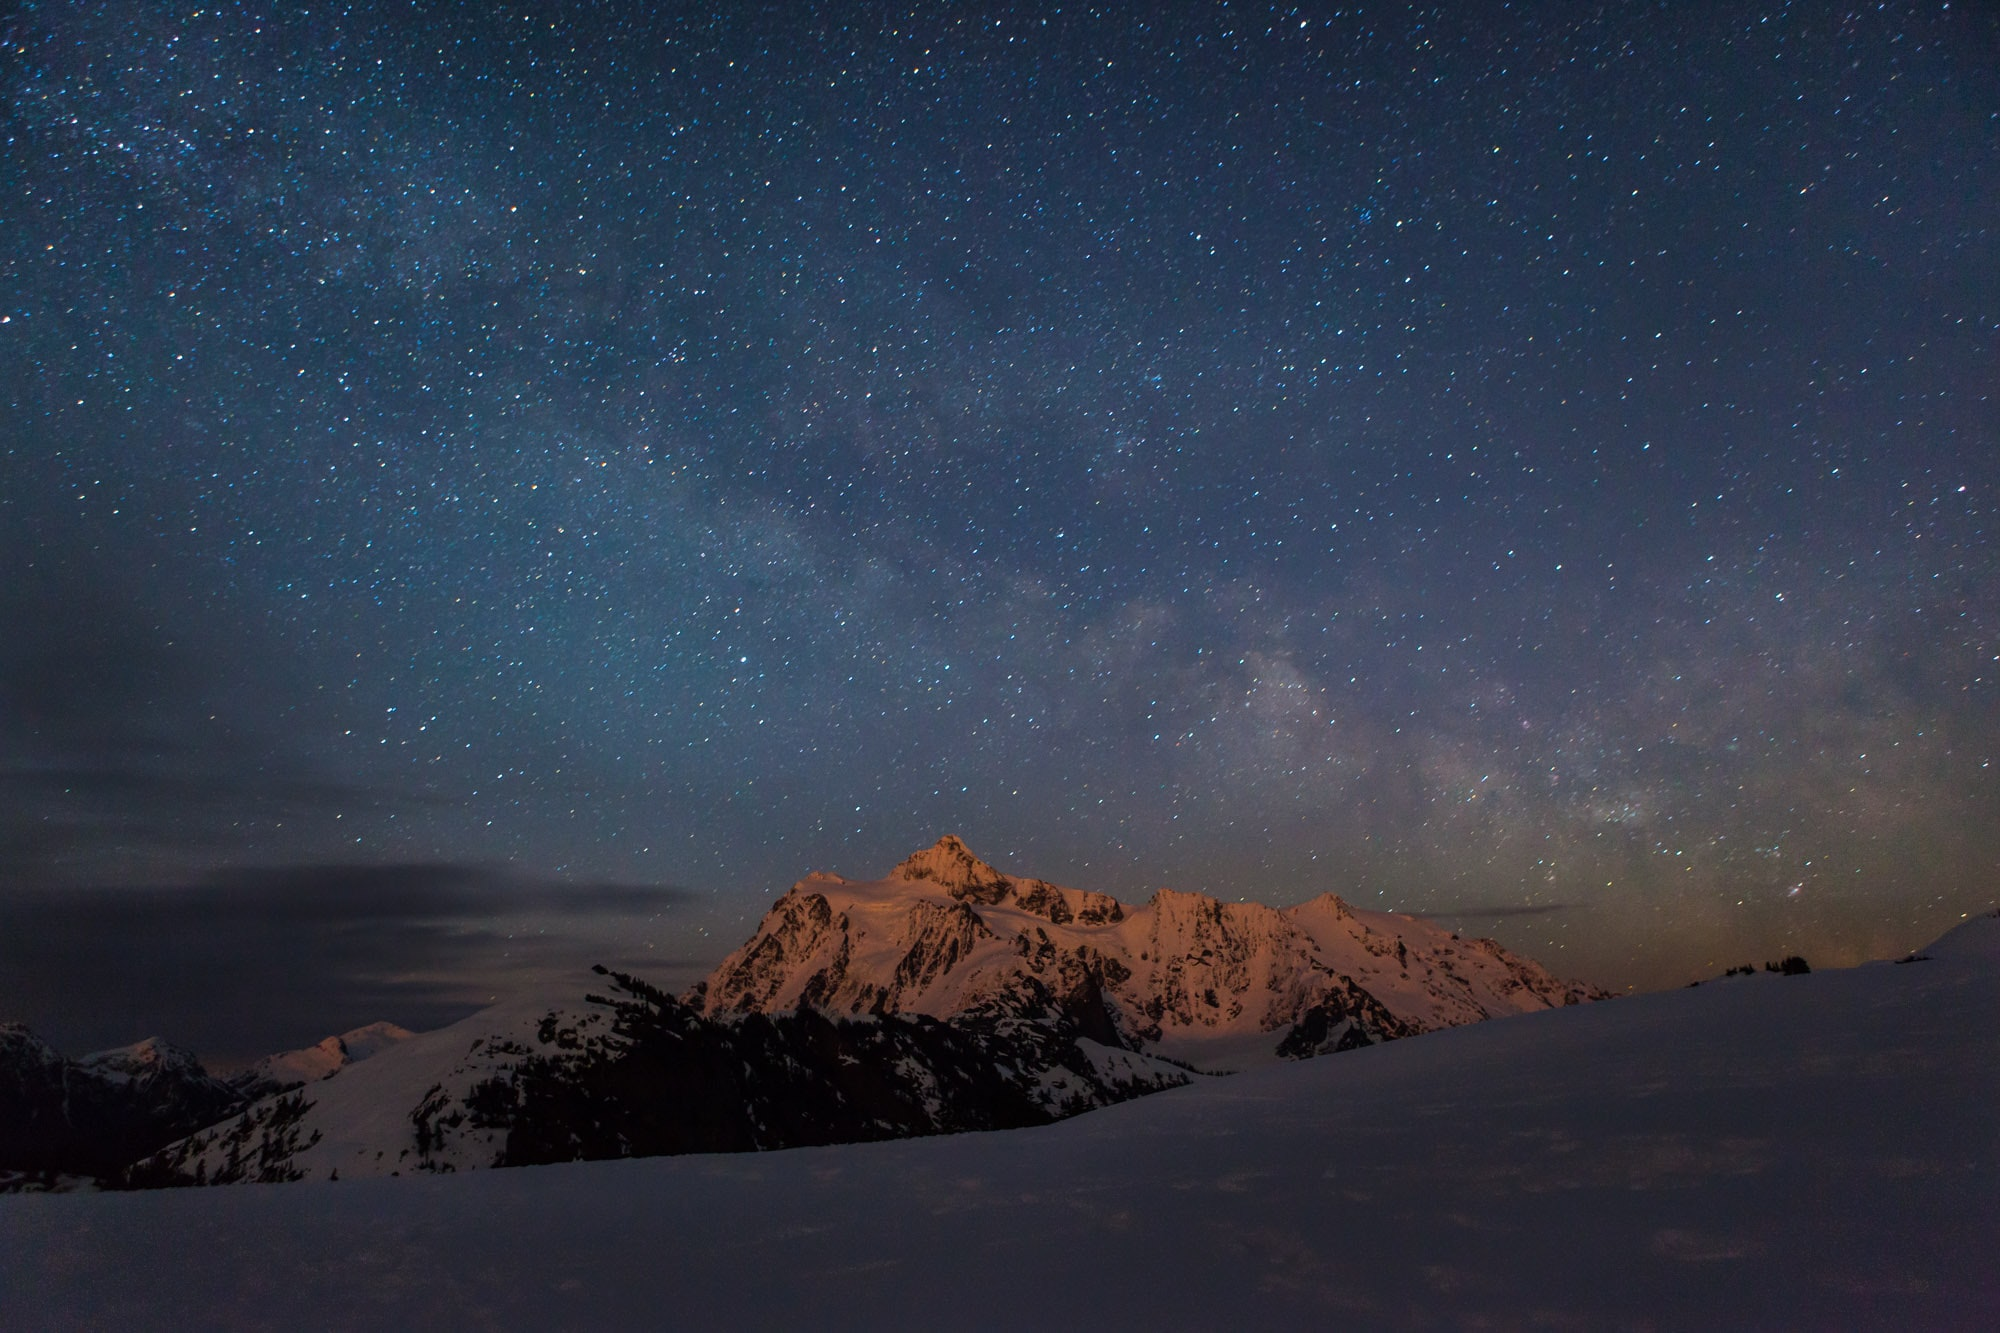 mountain covered with snow during nighttime view